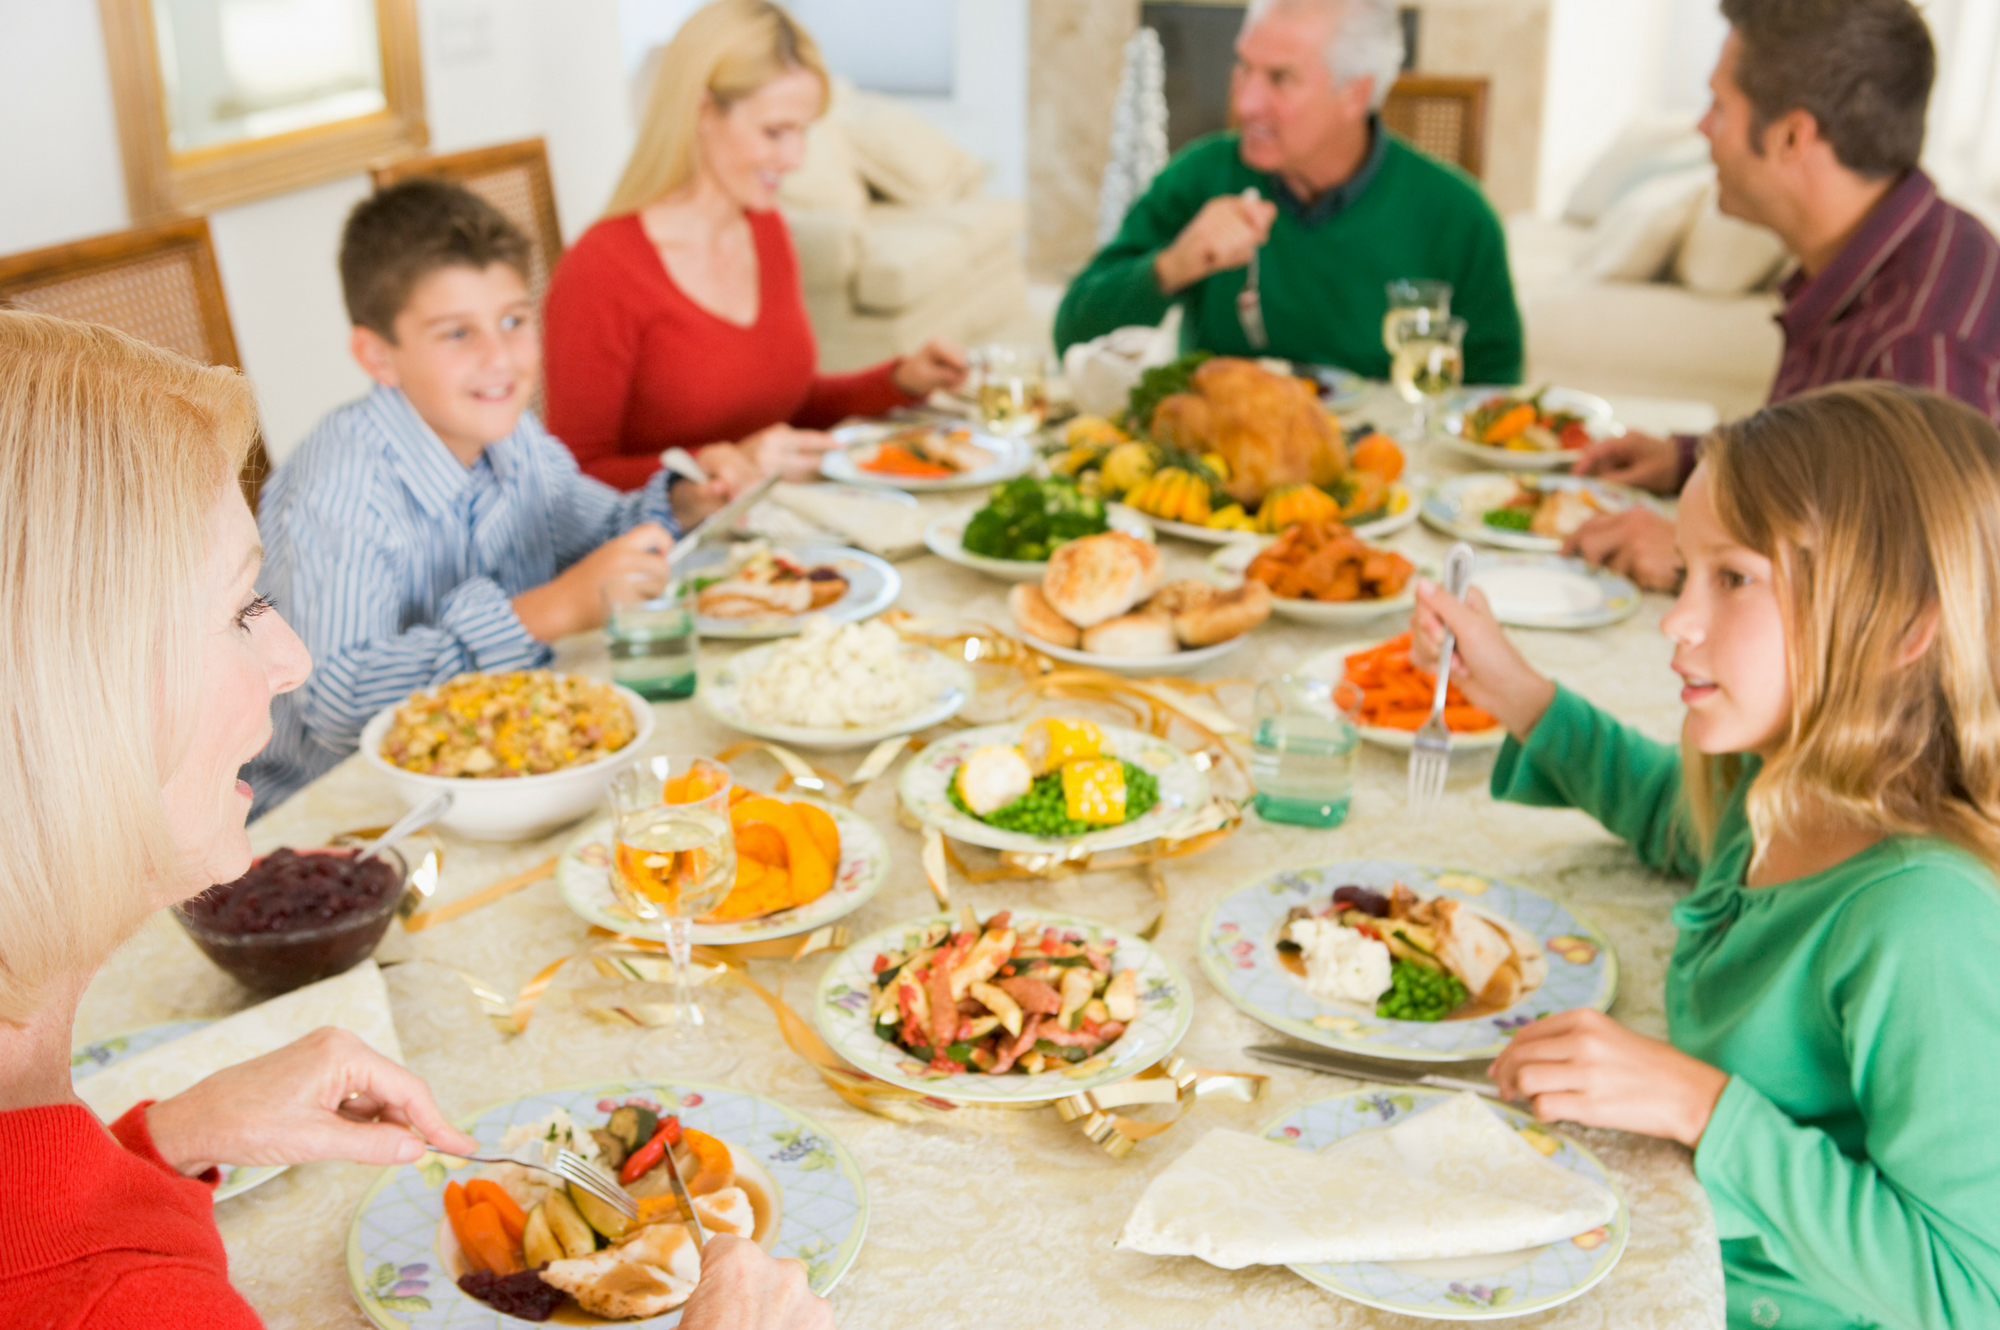 New You - The Family Fitness Series - Avoid the trap of Isolated Eating by James McDowell